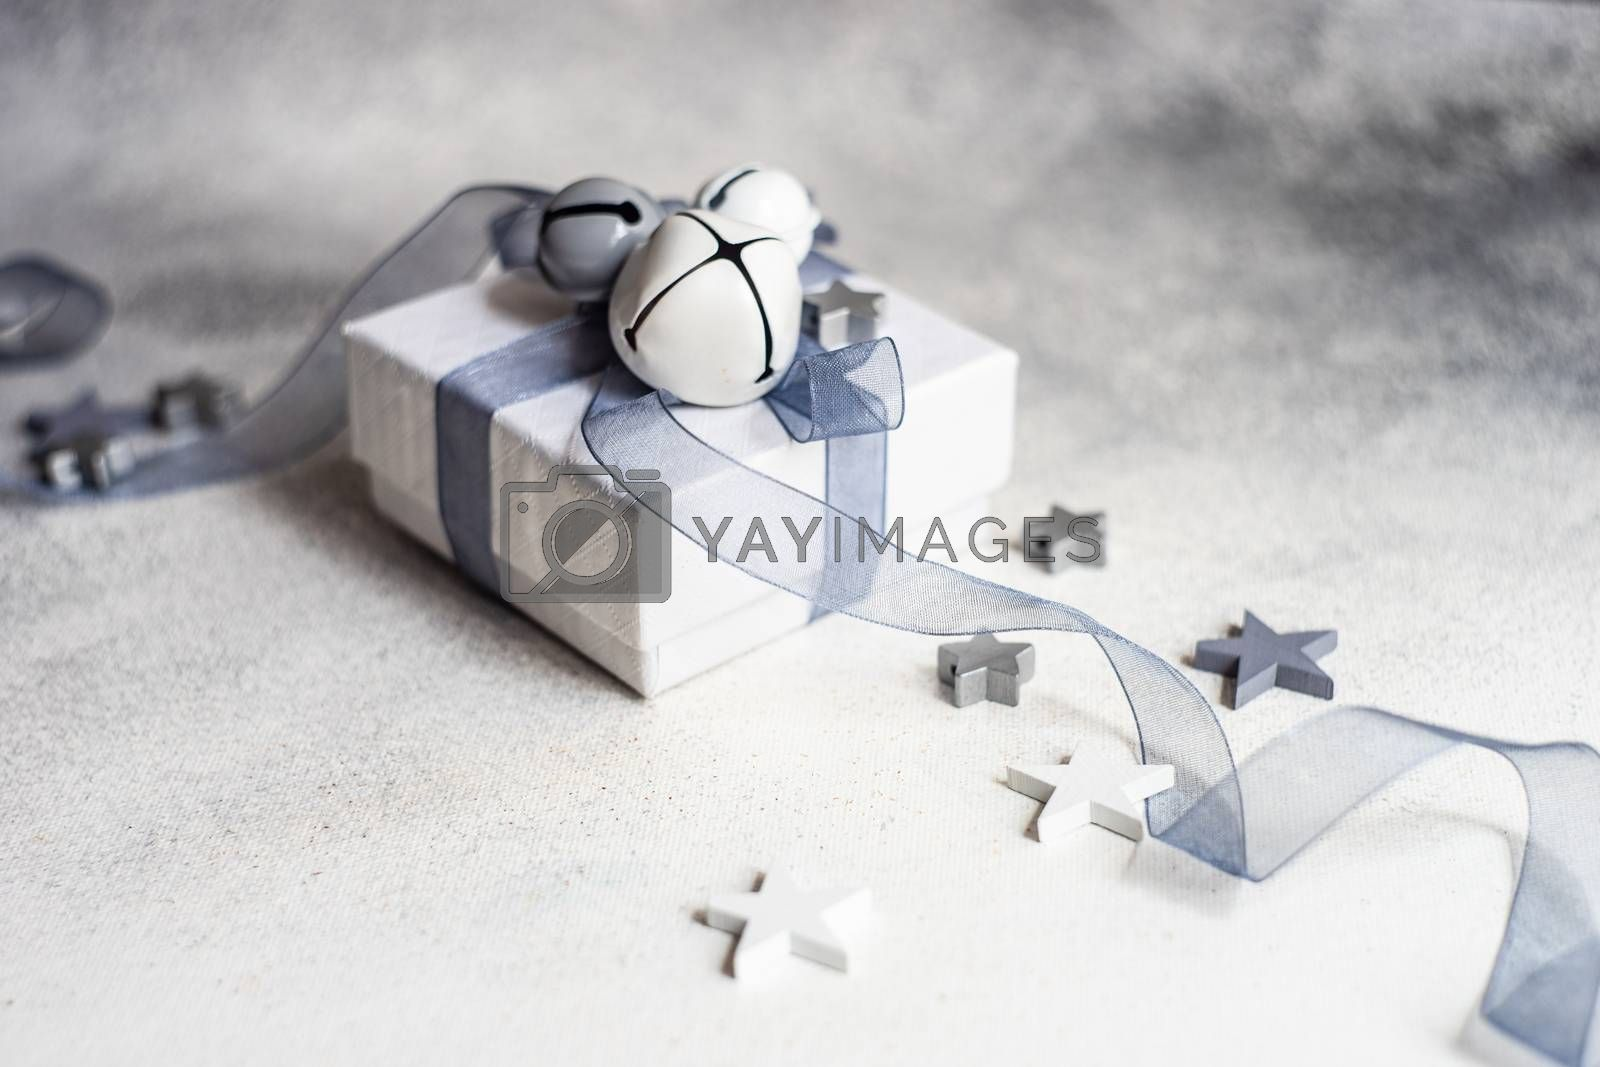 Festive Christmas card concept with gift box and star shaped decor in grey monochrome on concrete background with copy space